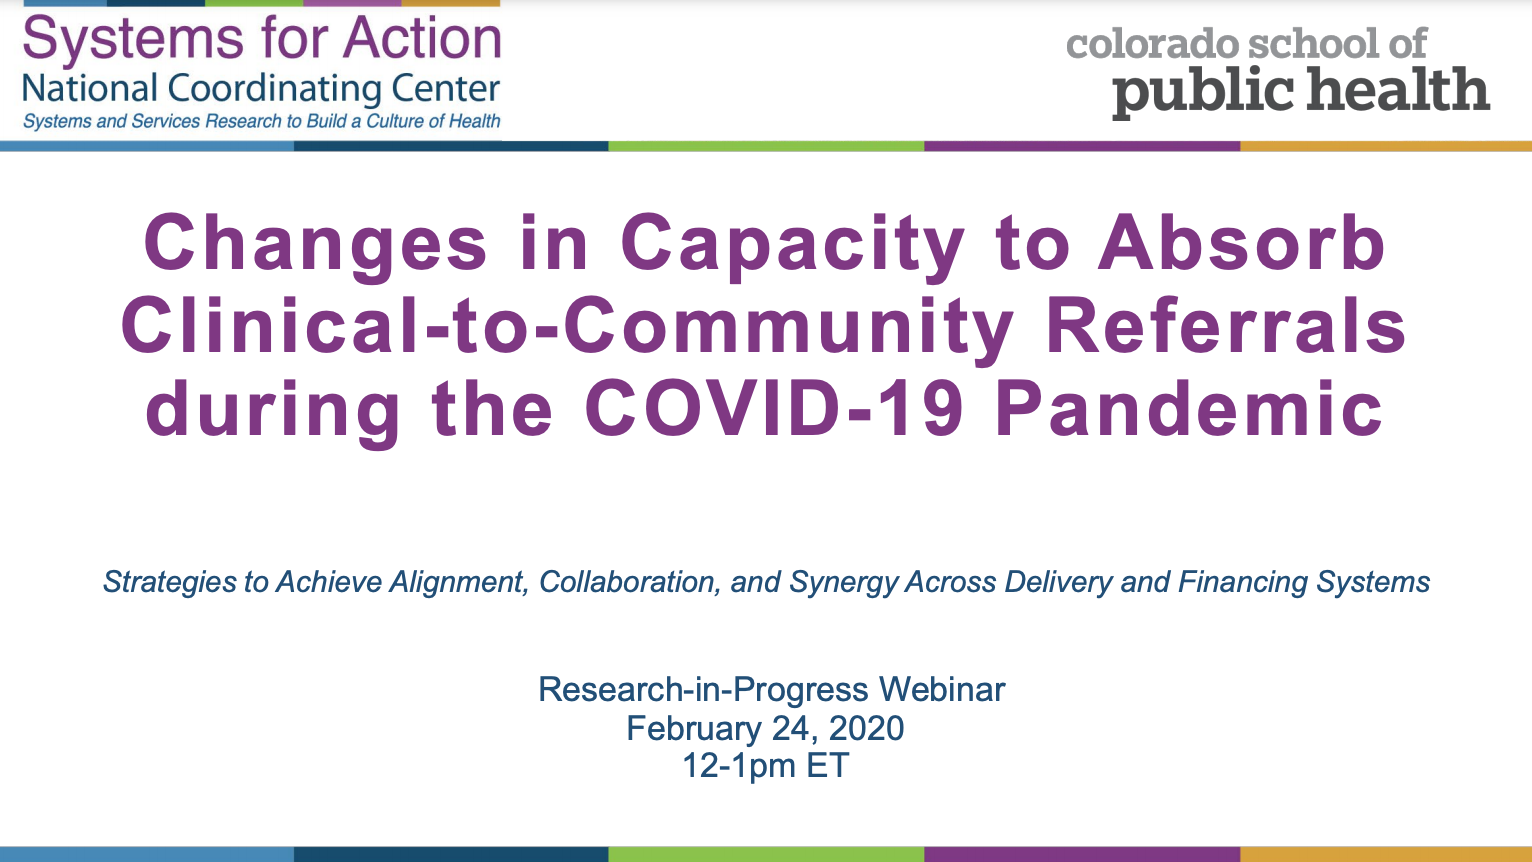 Changes in Capacity to Absorb Clinical-to-Community Referrals during the COVID-19 Pandemic